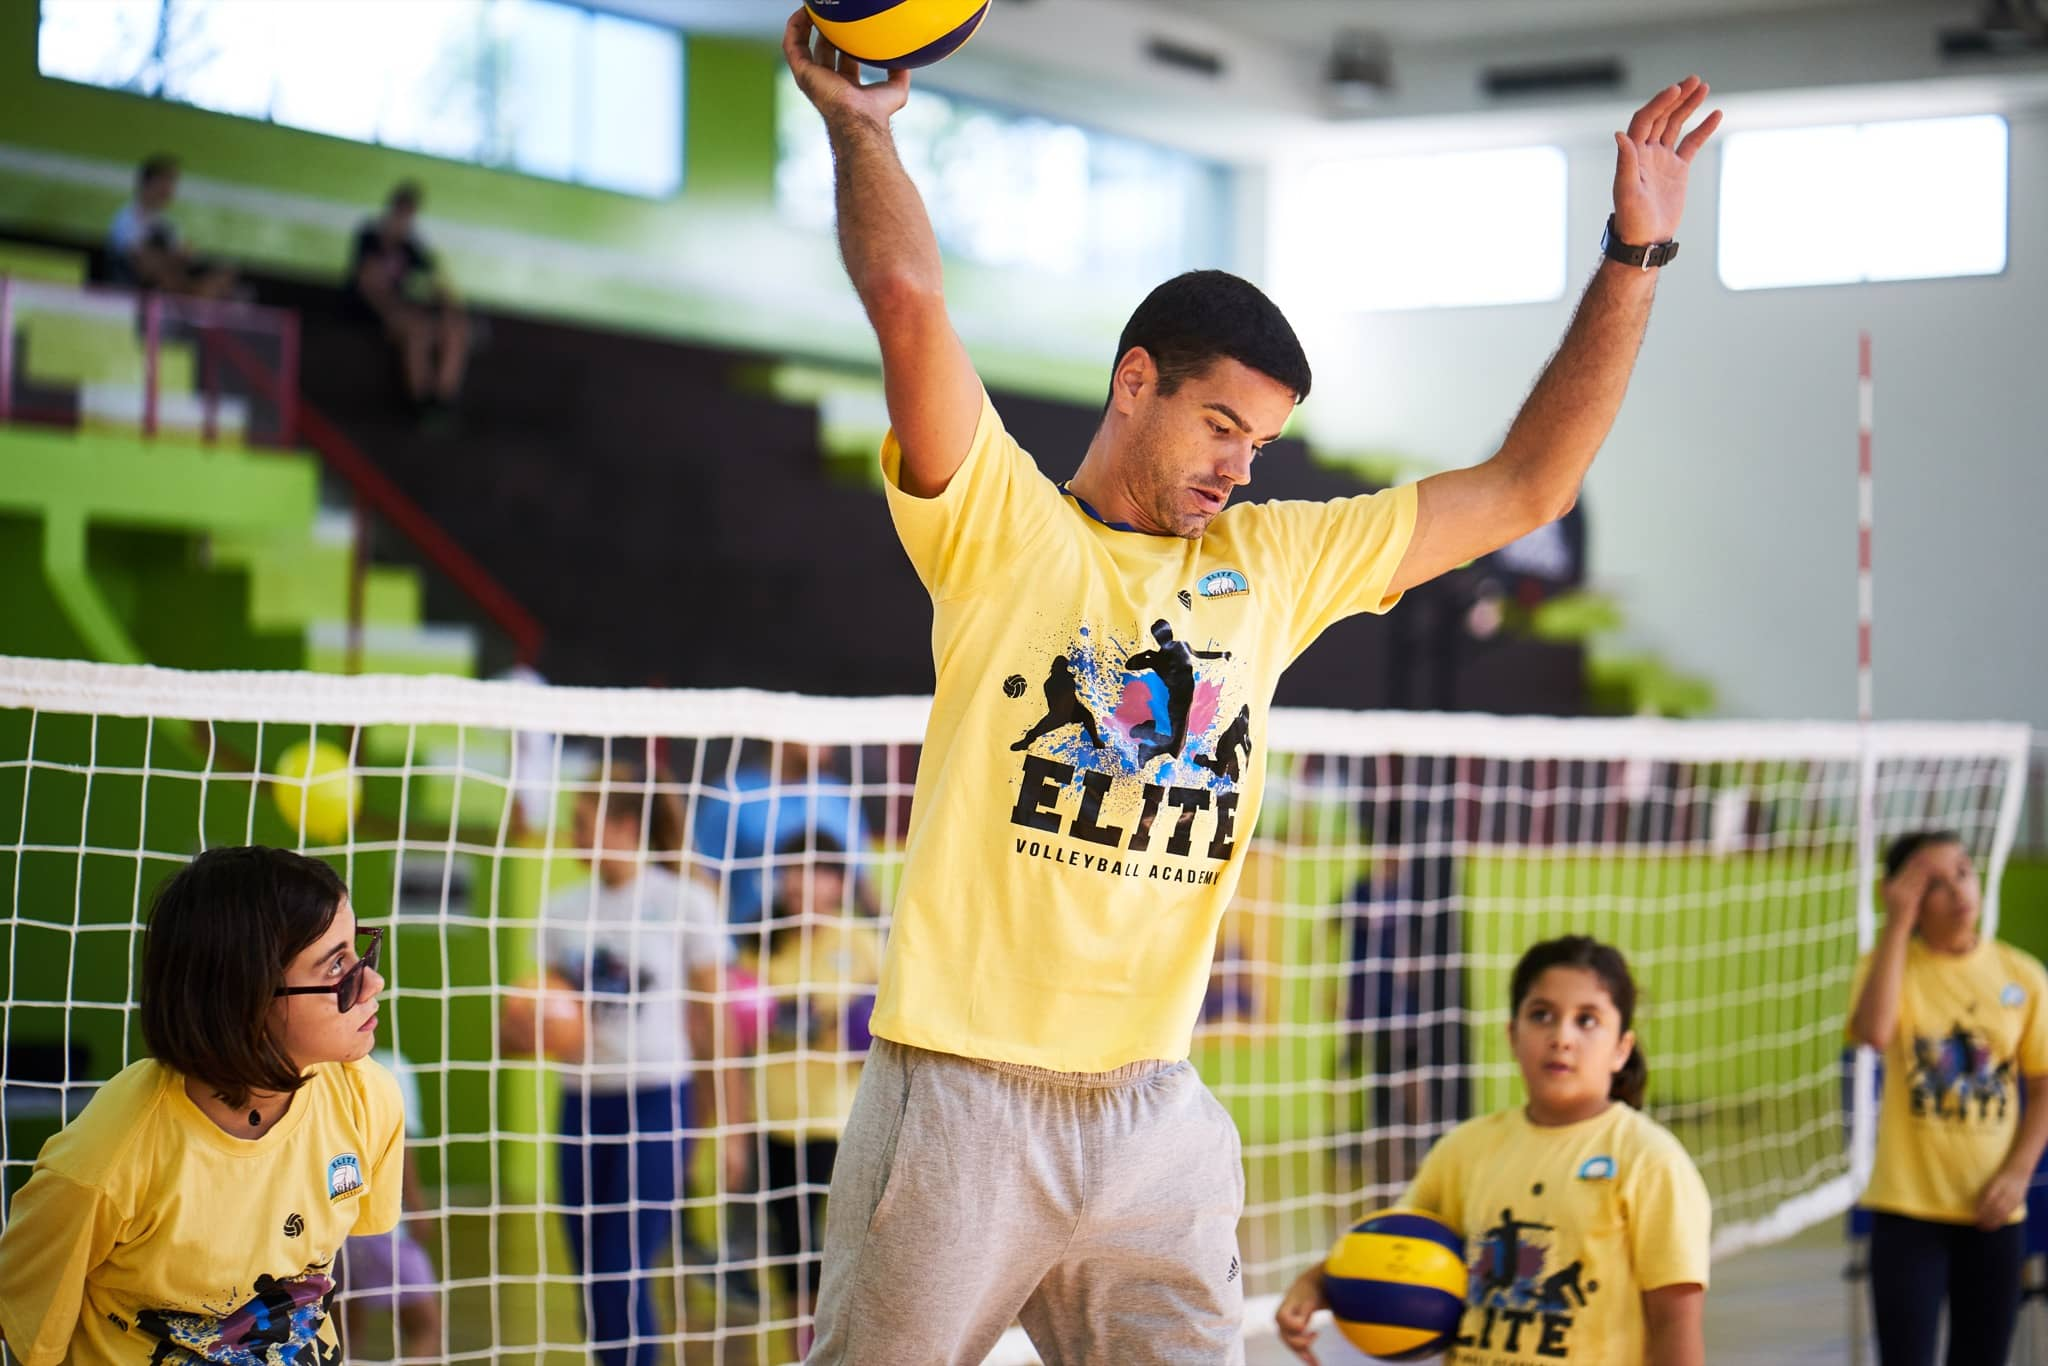 volleyball-academy-dubai-photo-00025